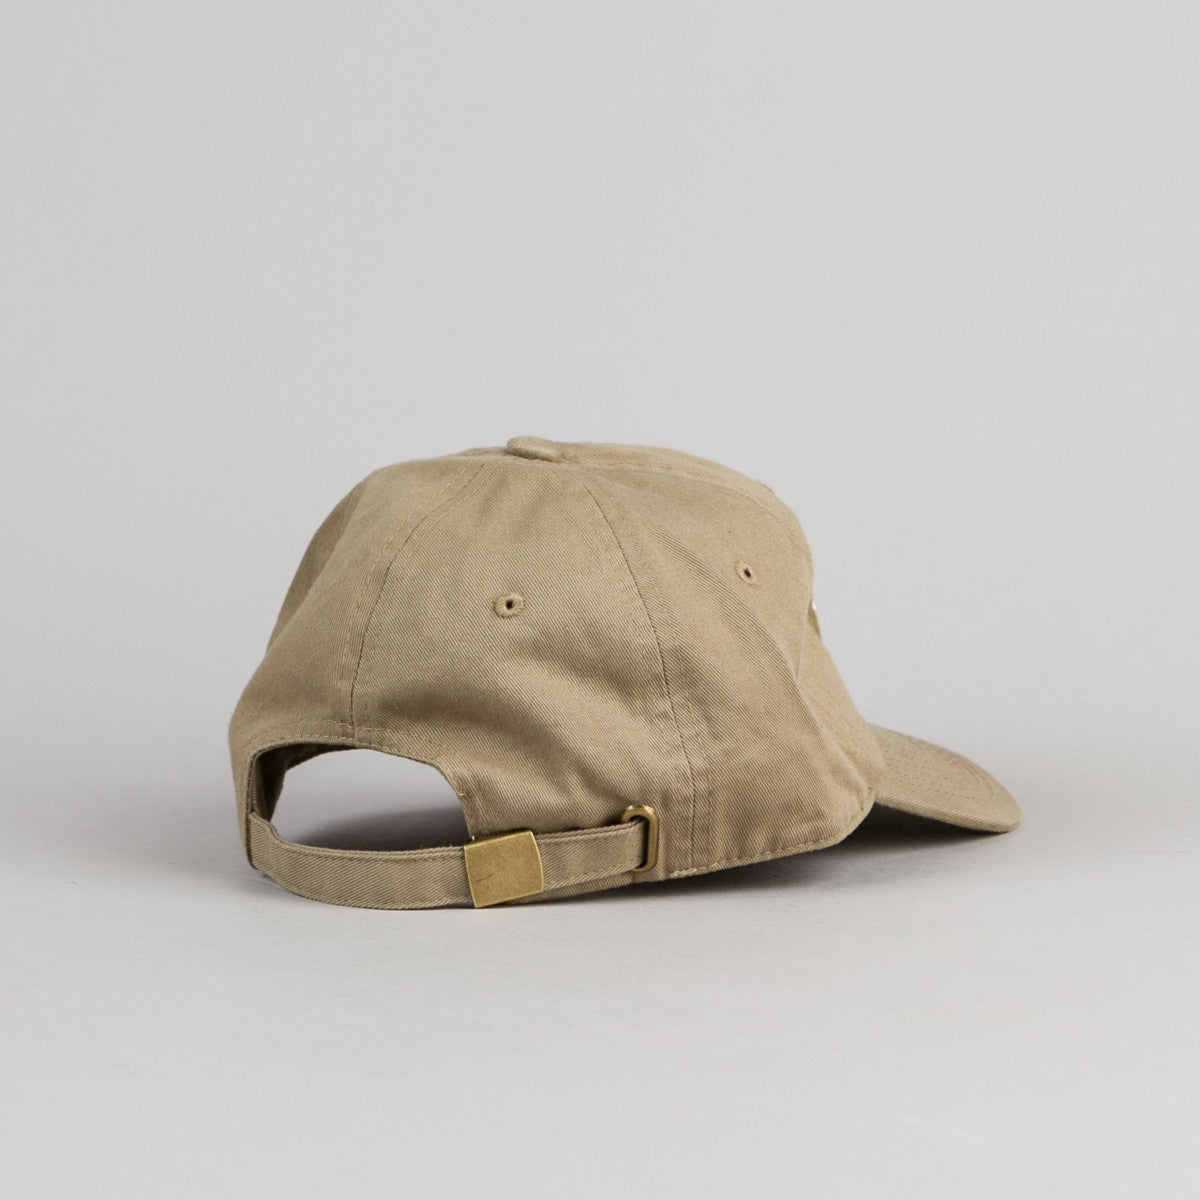 Canal New York Adult Headwear 6 Panel Cap - Tan